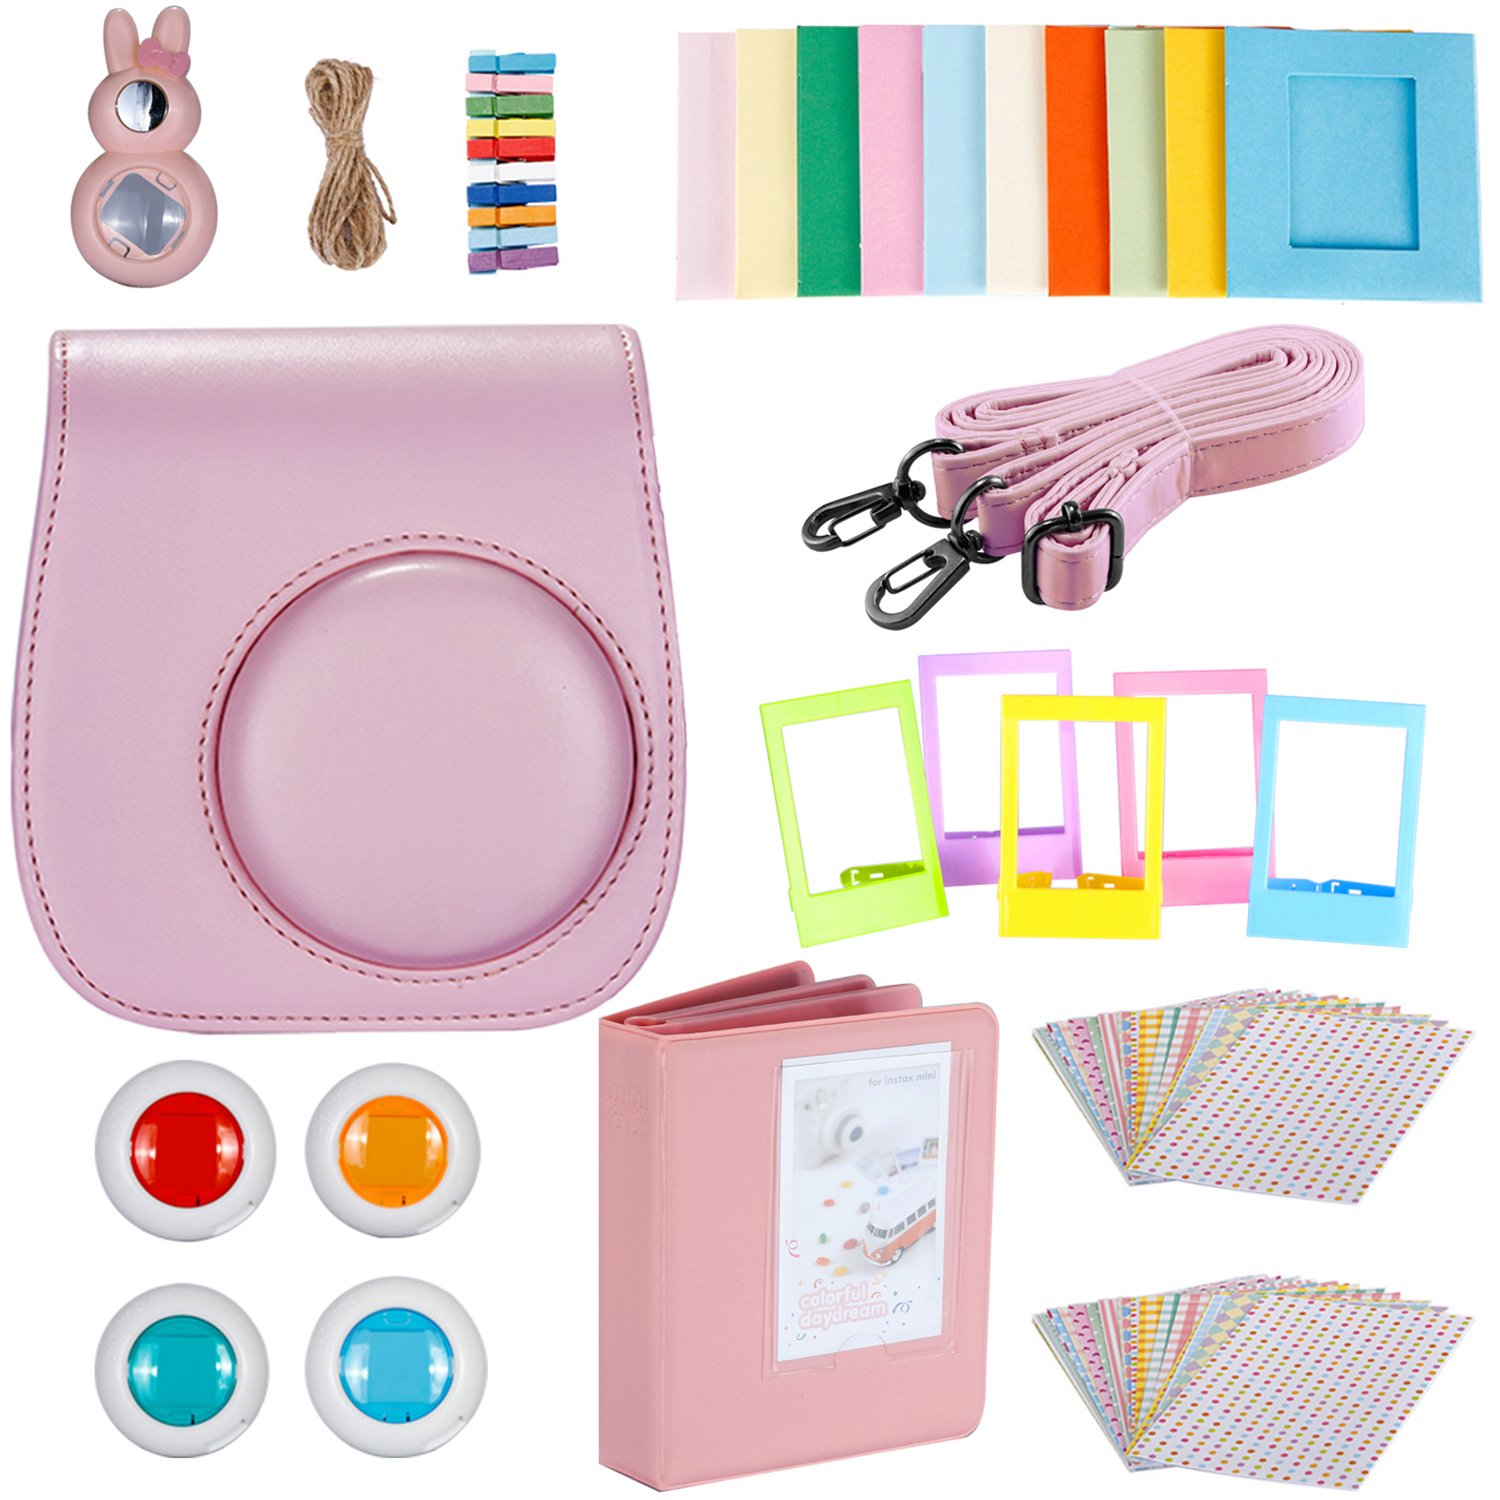 Neewer 9-in-1 Camera Bundles Set for Fujifilm Instax Mini 8/8s/9, Include Album/Selfie Lens/Colored Filters/Wall Hang Frames/Film Frames/Border Stickers/Camera Case (Pink)